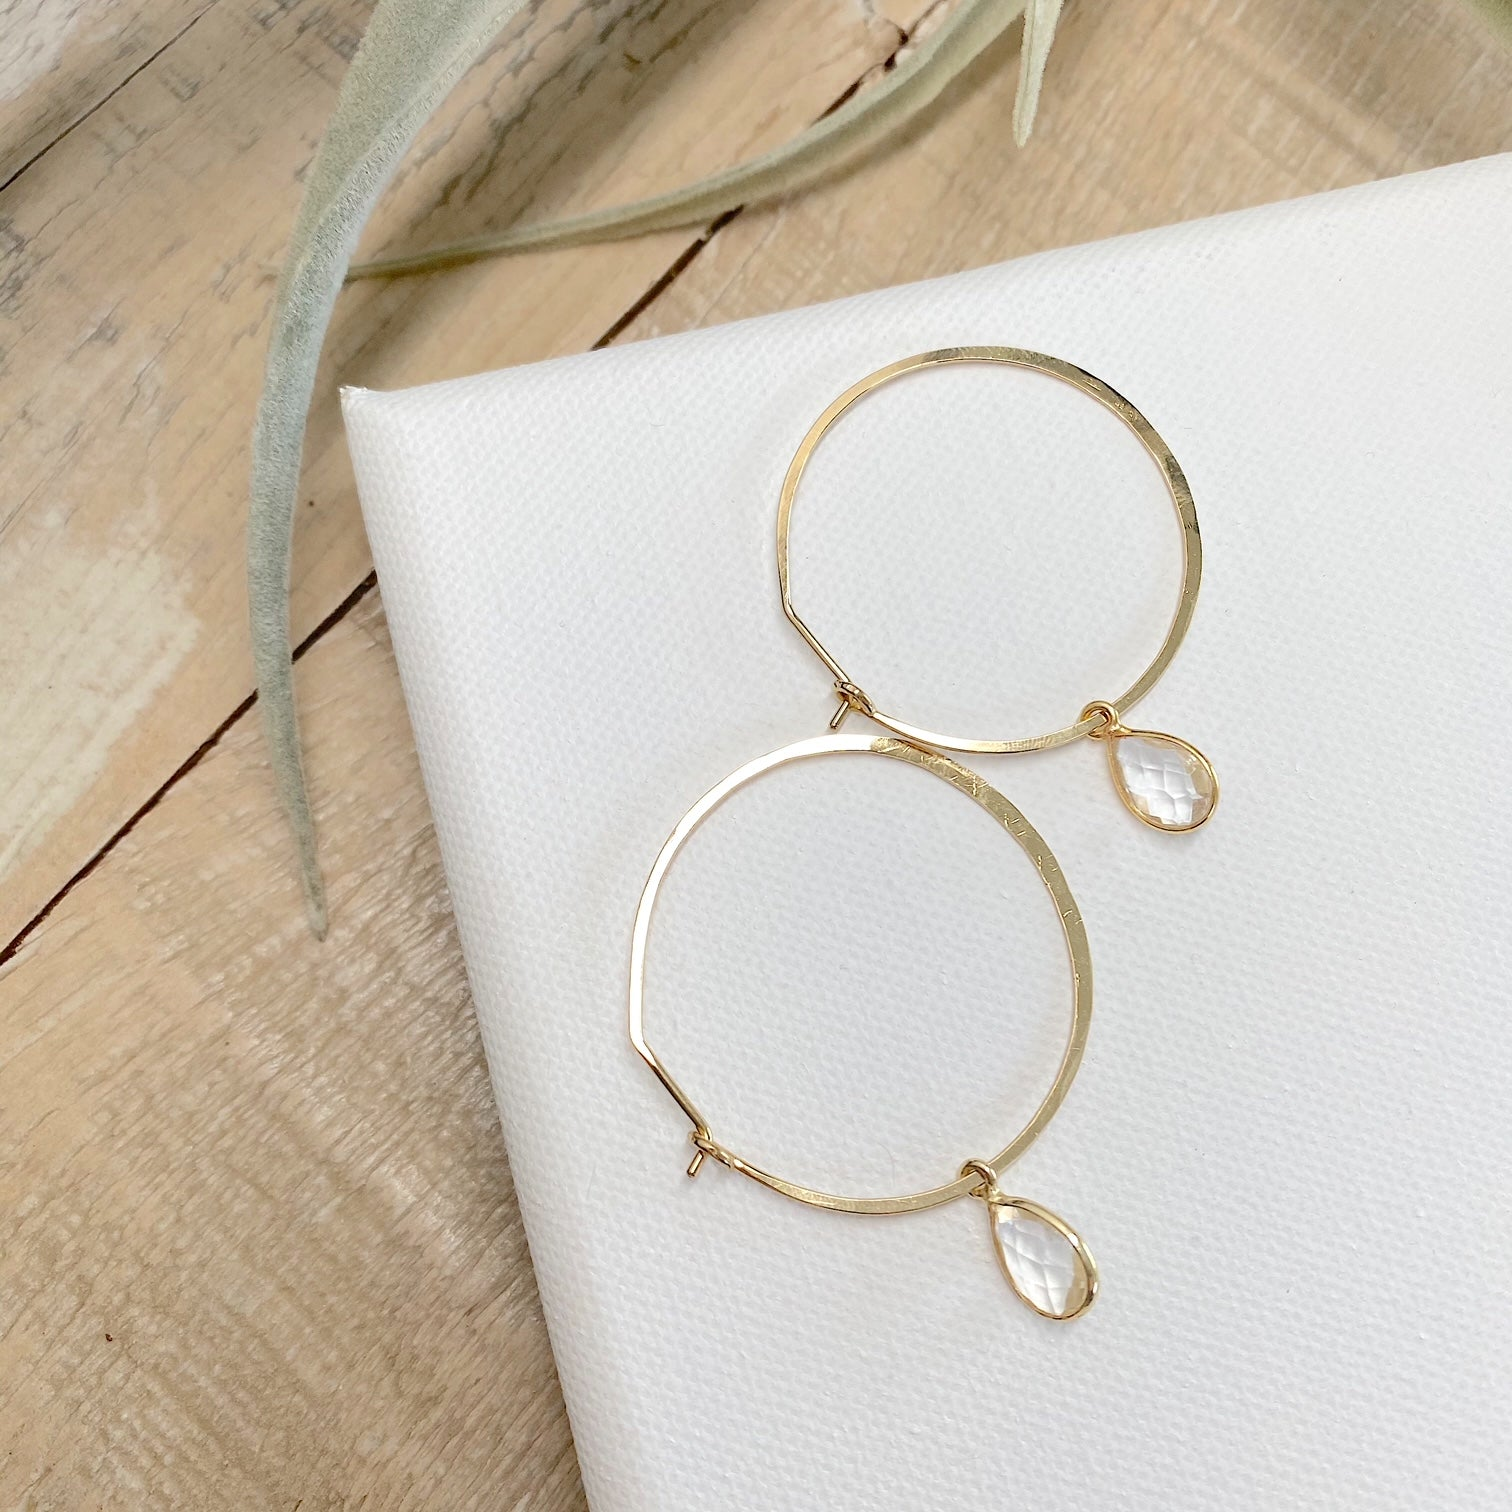 Brass & Quartz Hoops